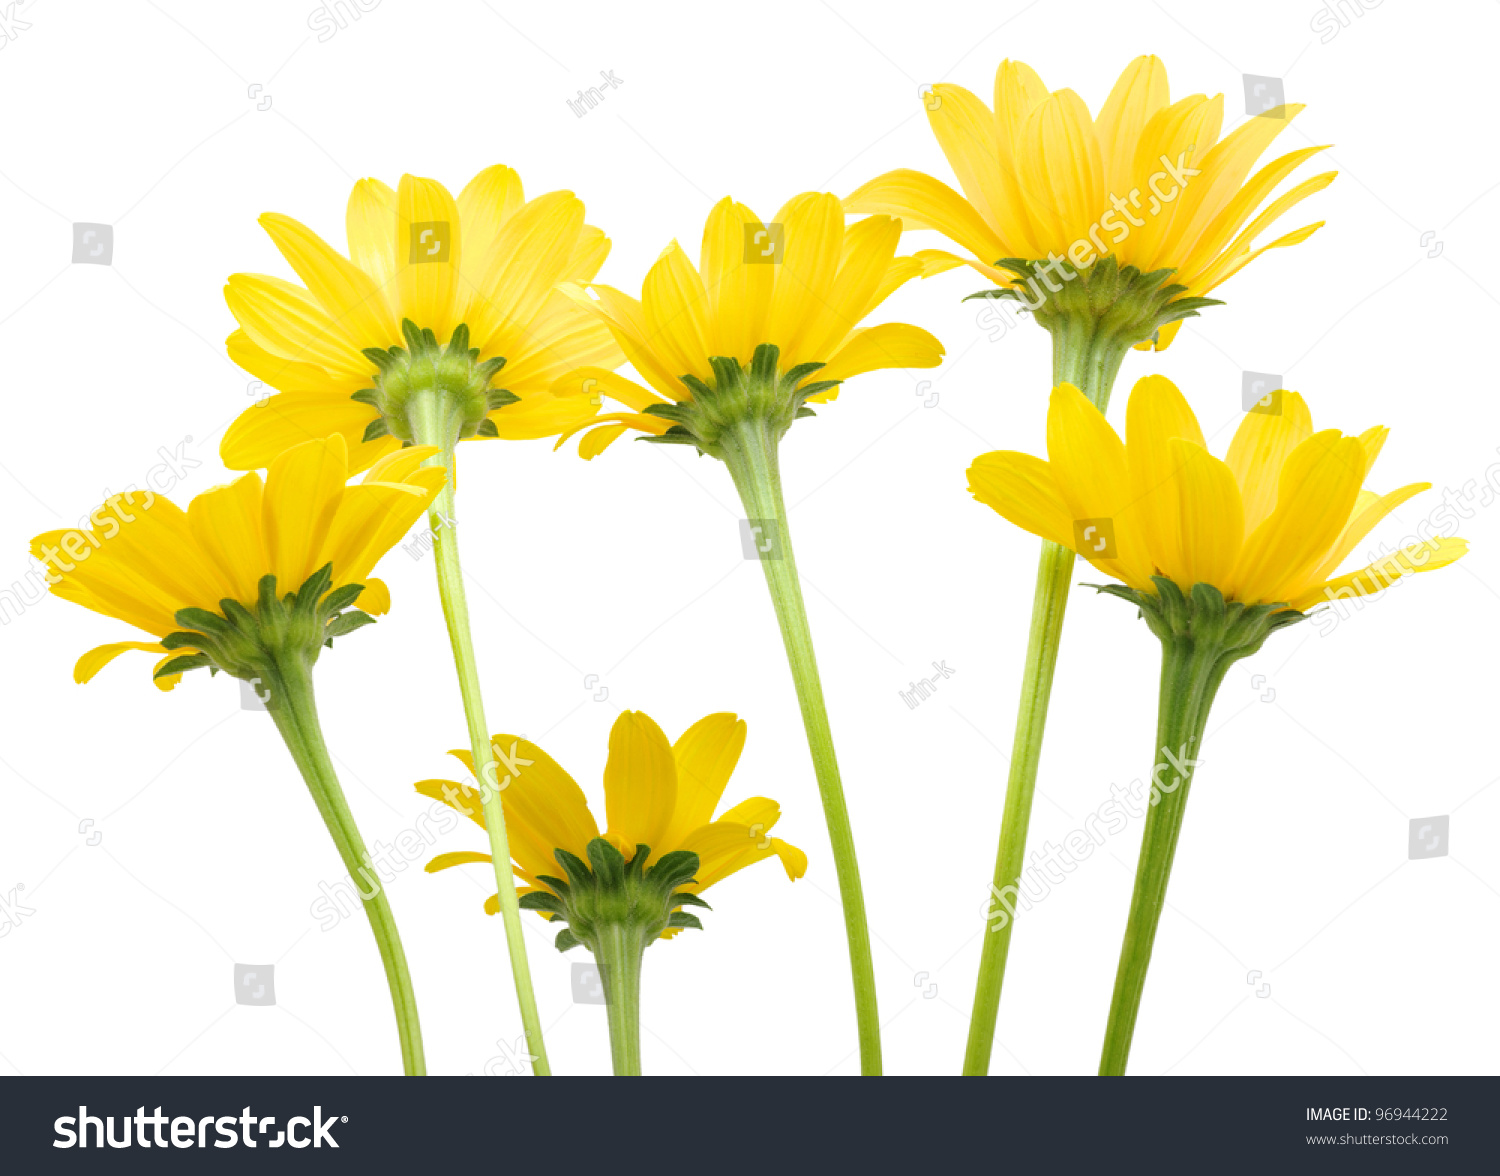 Bunch Of Yellow Daisy Flowers On White Background Ez Canvas